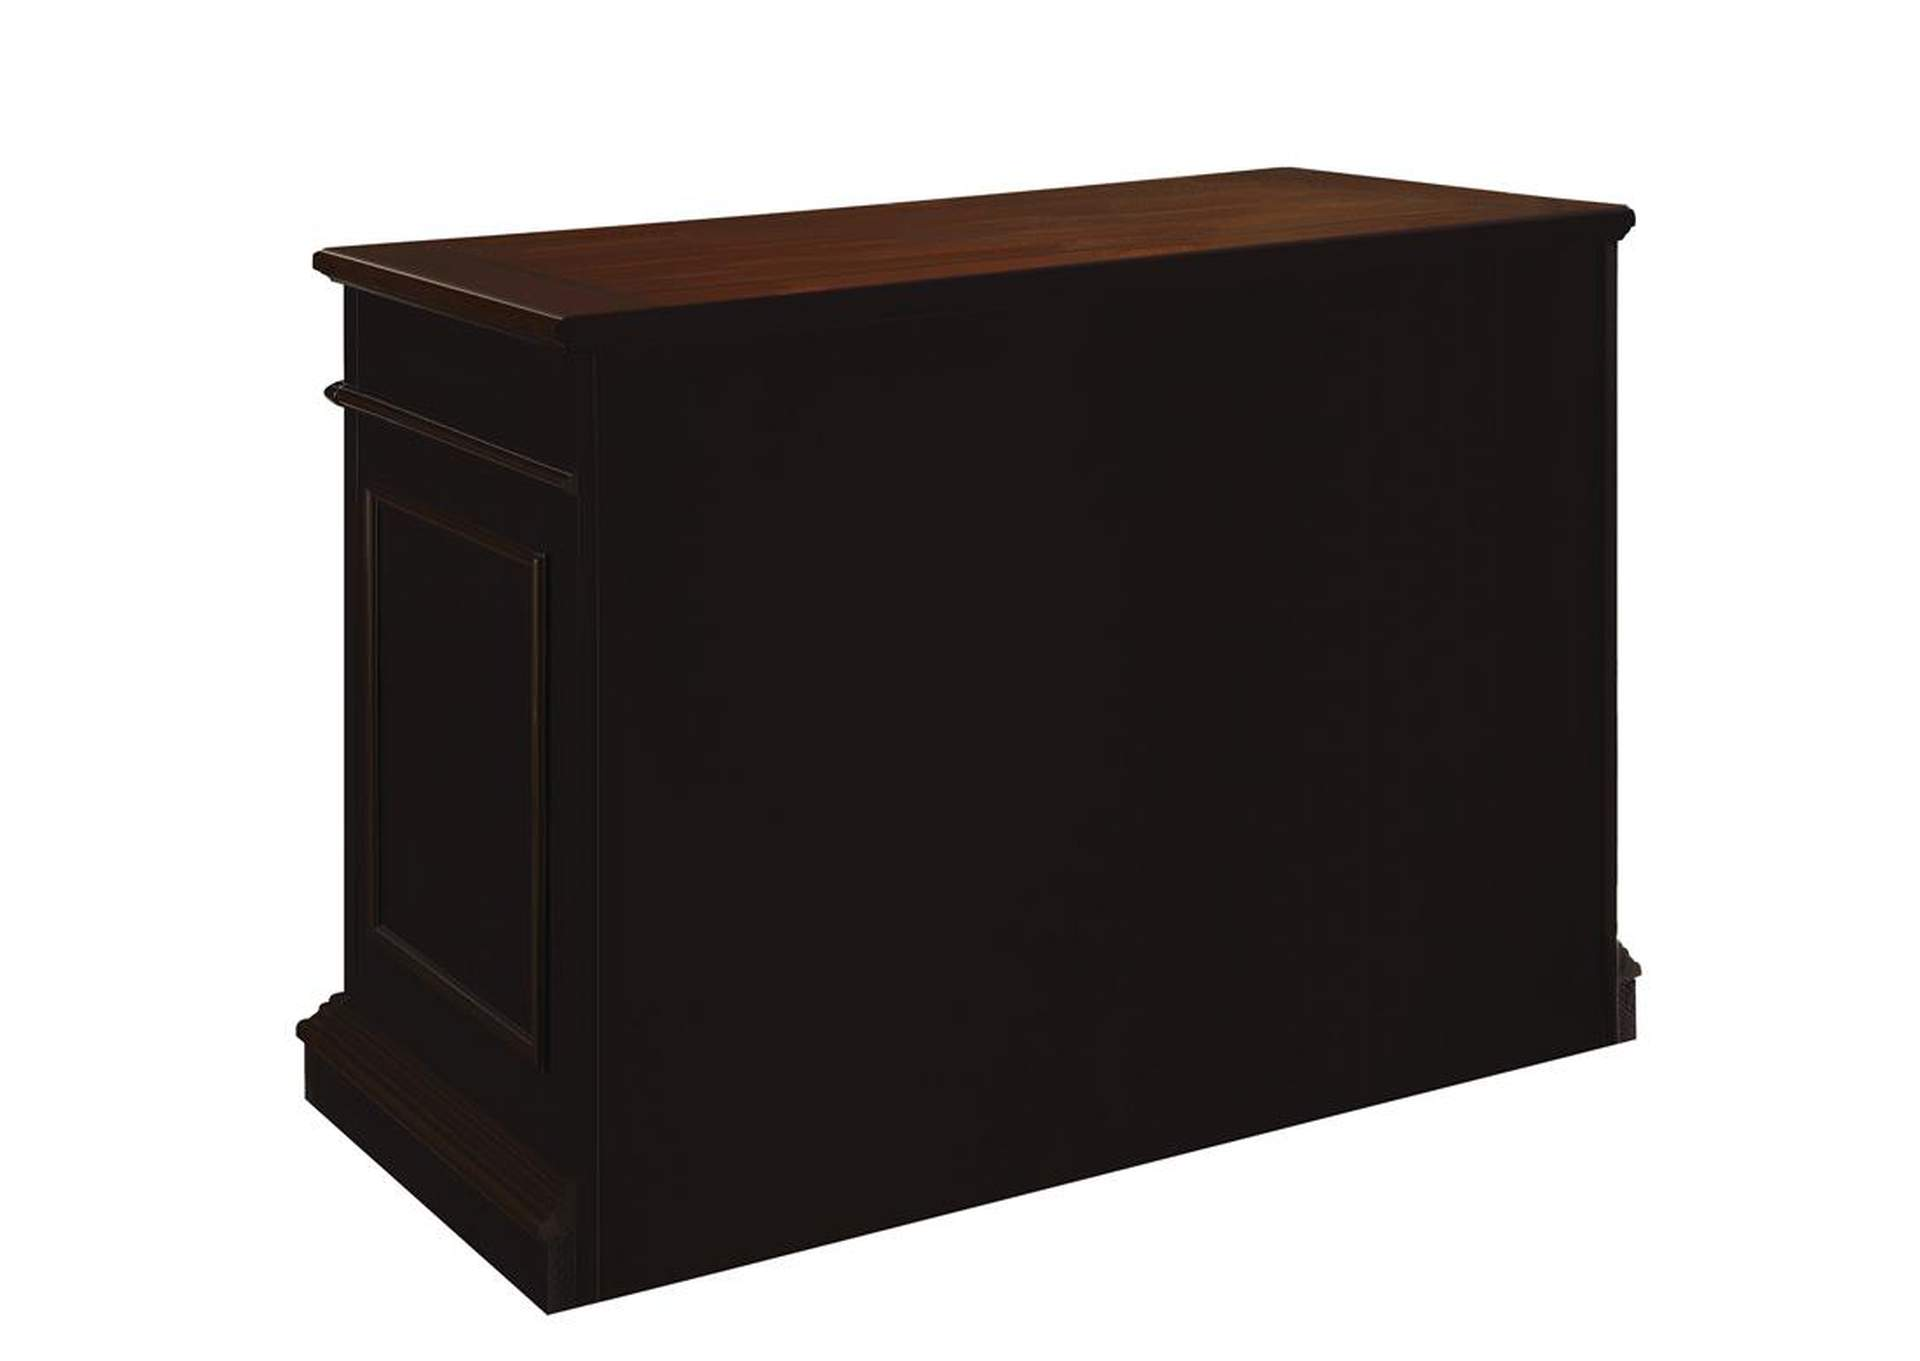 Rowan Black/Chesnut File Cabinet,Coaster Furniture